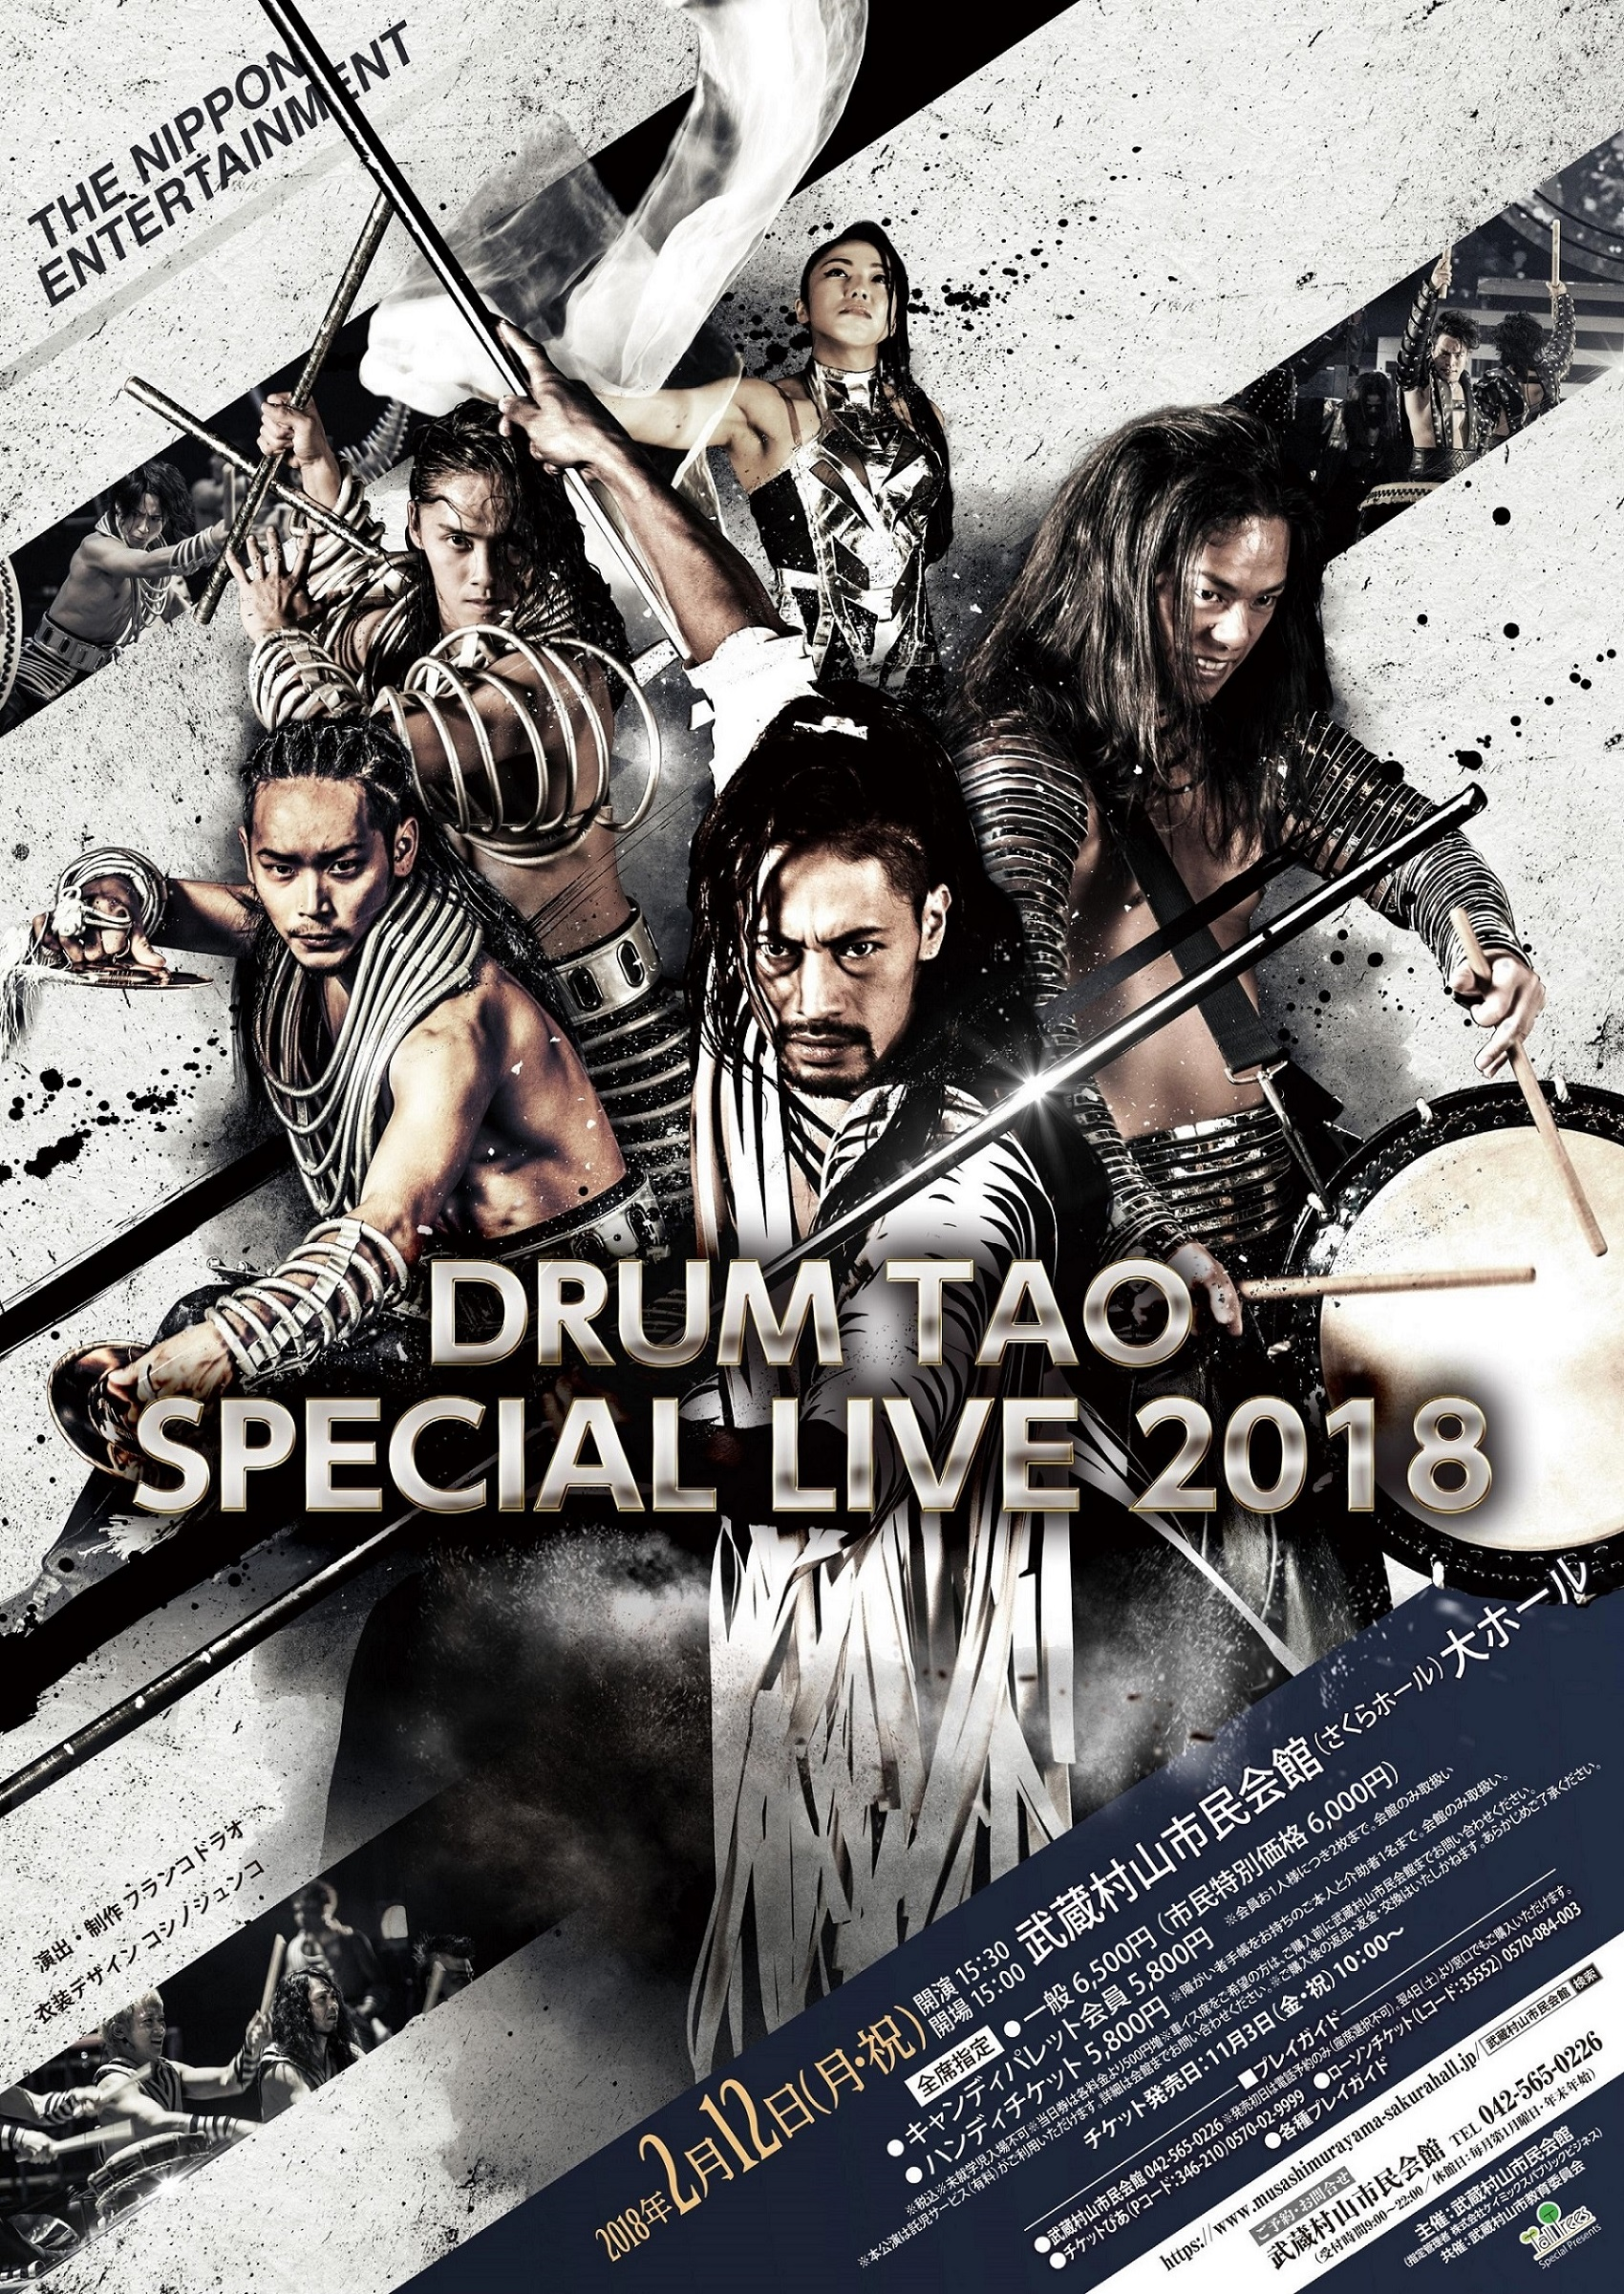 DRUM TAO SPECIAL LIVE 2018//日時:2018年2月12日(月・祝) 開演15:30(開場15:00)/会場:武蔵村山市民会館(さくらホール)大ホール/料金:全席指定 一般6,500円 ⇒ 割引価格5,800円/ホームページ:https://www.musashimurayama-sakurahall.jp/event/5484//